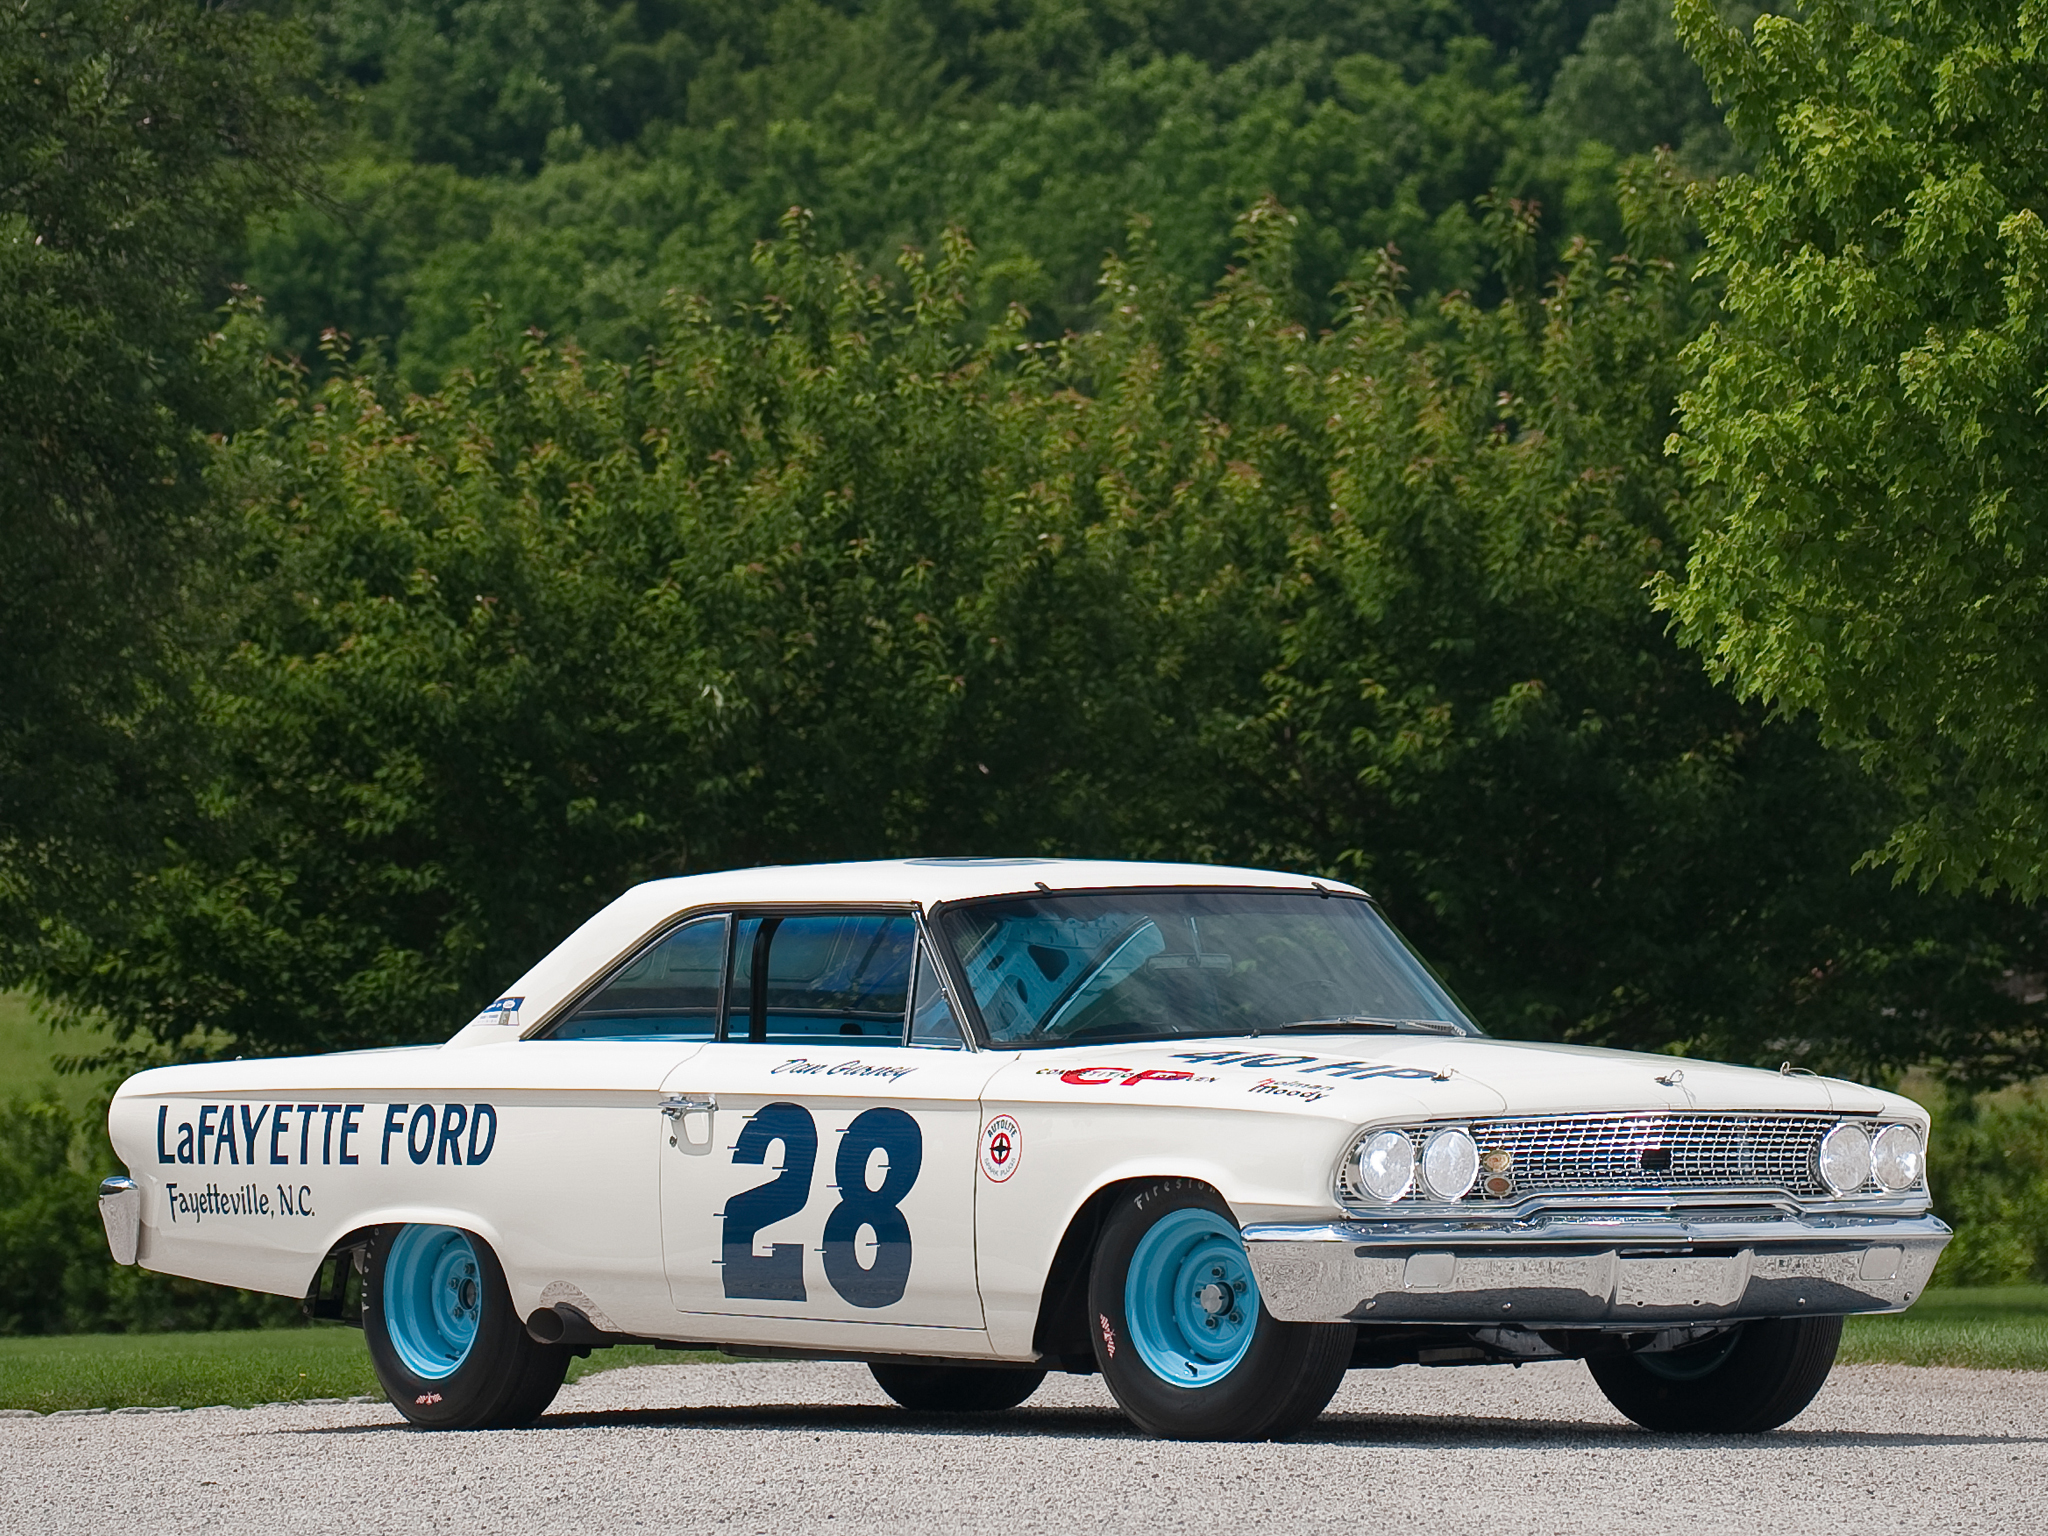 1963 ford galaxie 500 427 - 1963 Ford Galaxie 500 X L 427 Lightweight Nascar Race Racing Classic Muscle D Wallpaper 2048x1536 93914 Wallpaperup